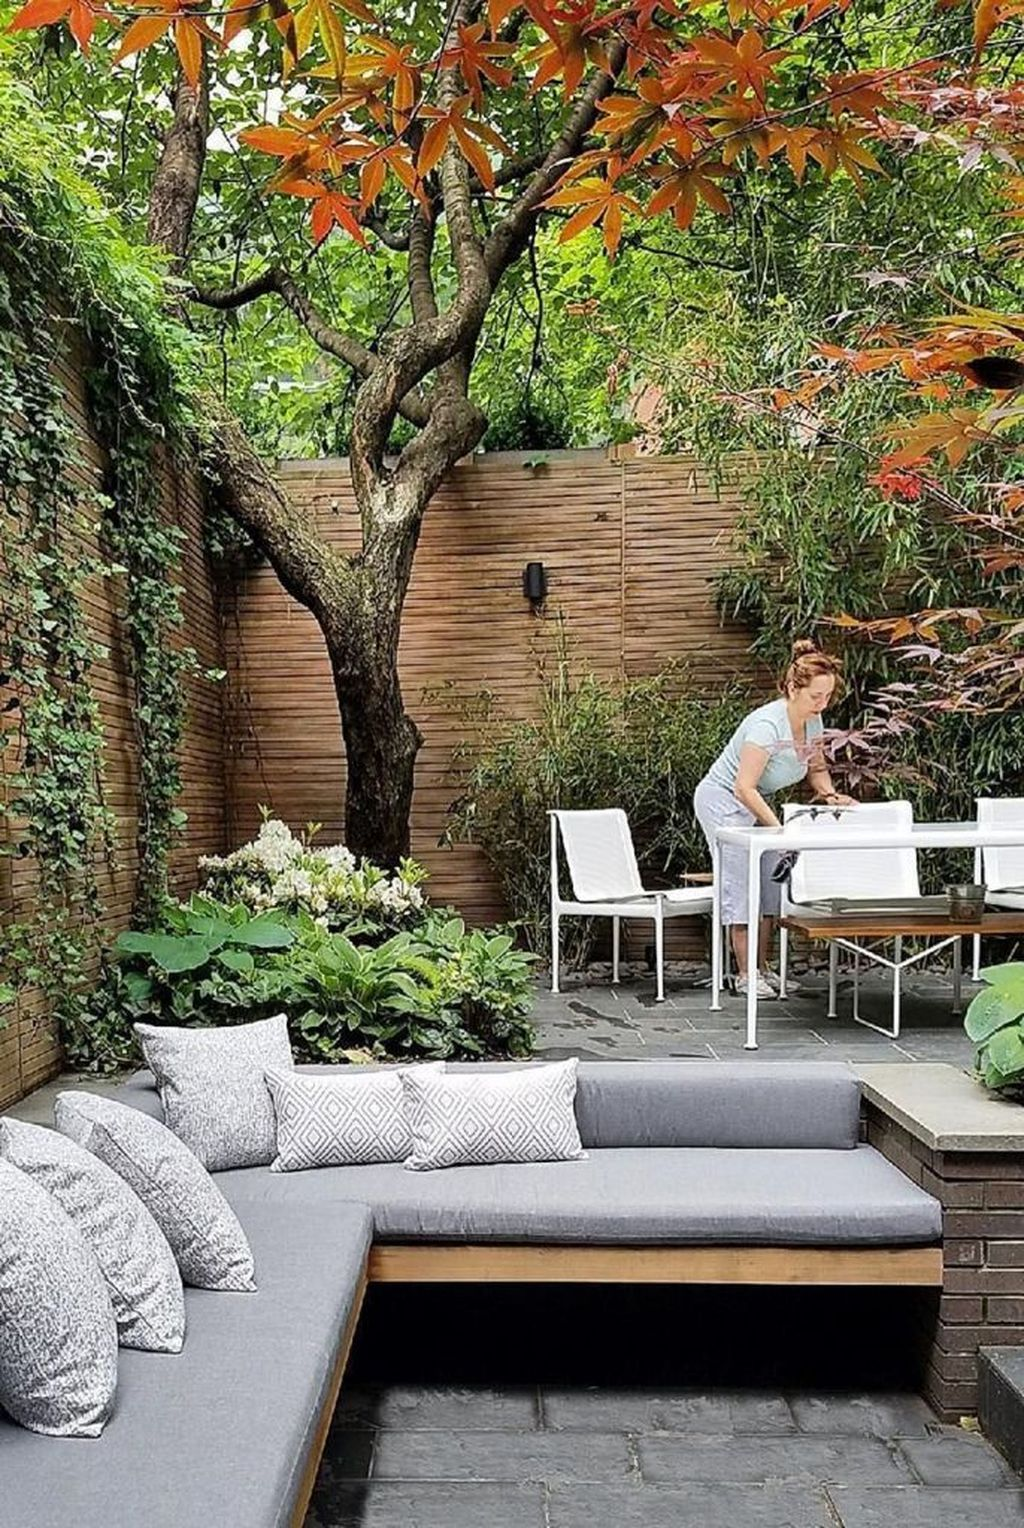 32 awesome small backyard design ideas that will make your on awesome backyard garden landscaping ideas that looks amazing id=46363